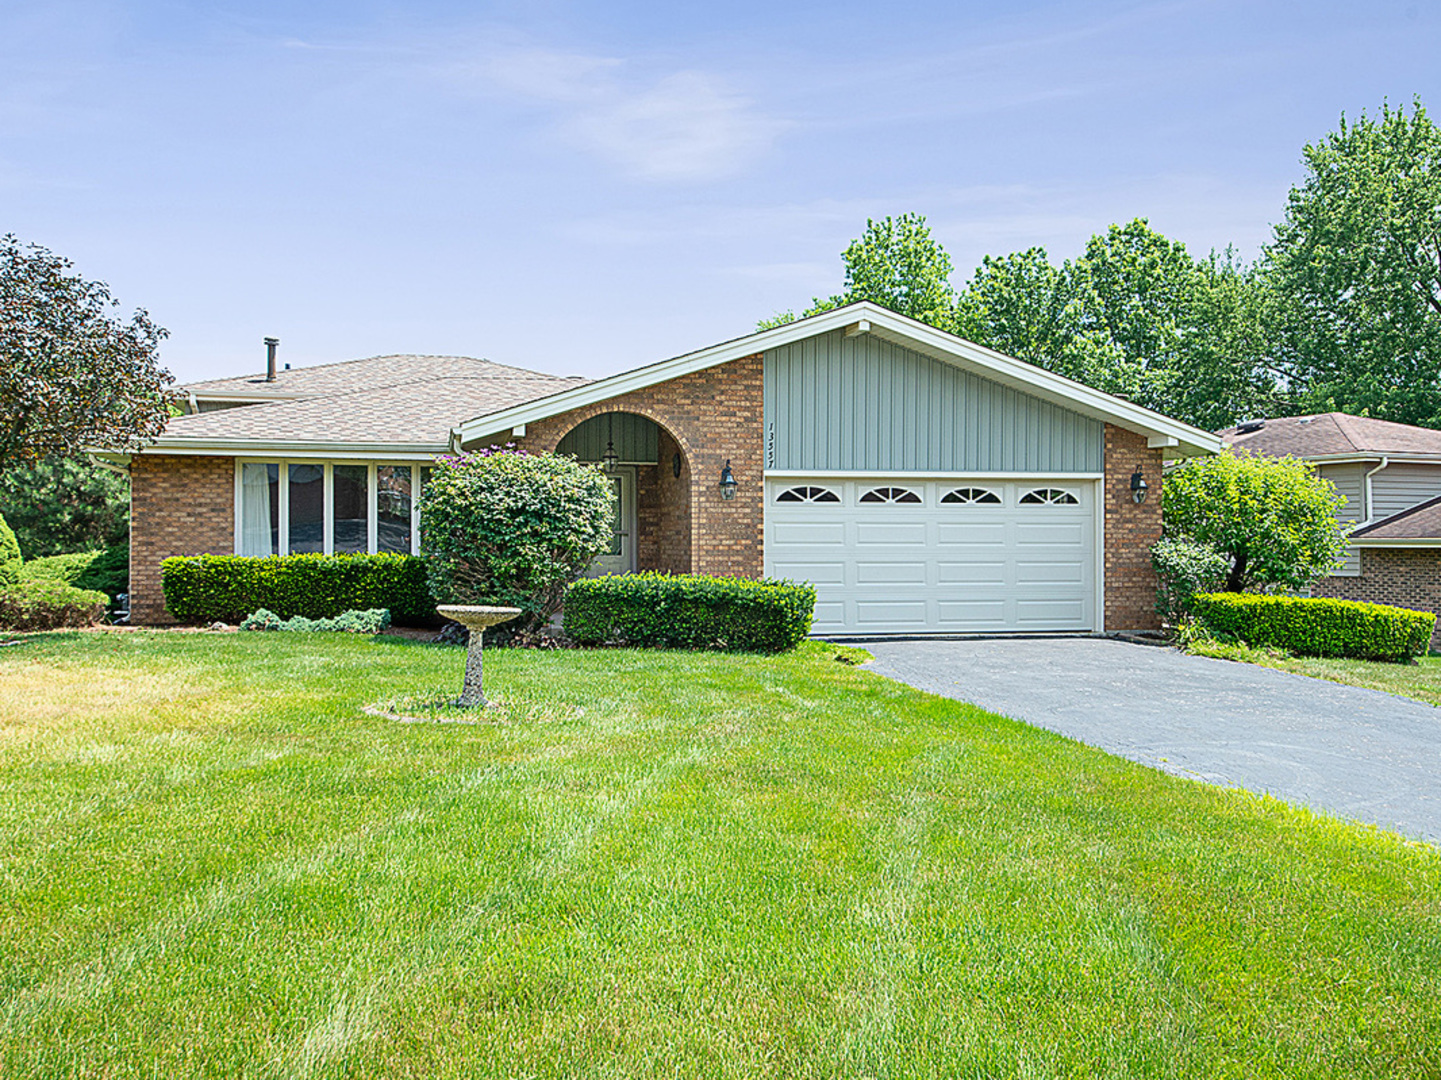 13557 South Monaghan Road, Homer Glen in Will County, IL 60491 Home for Sale